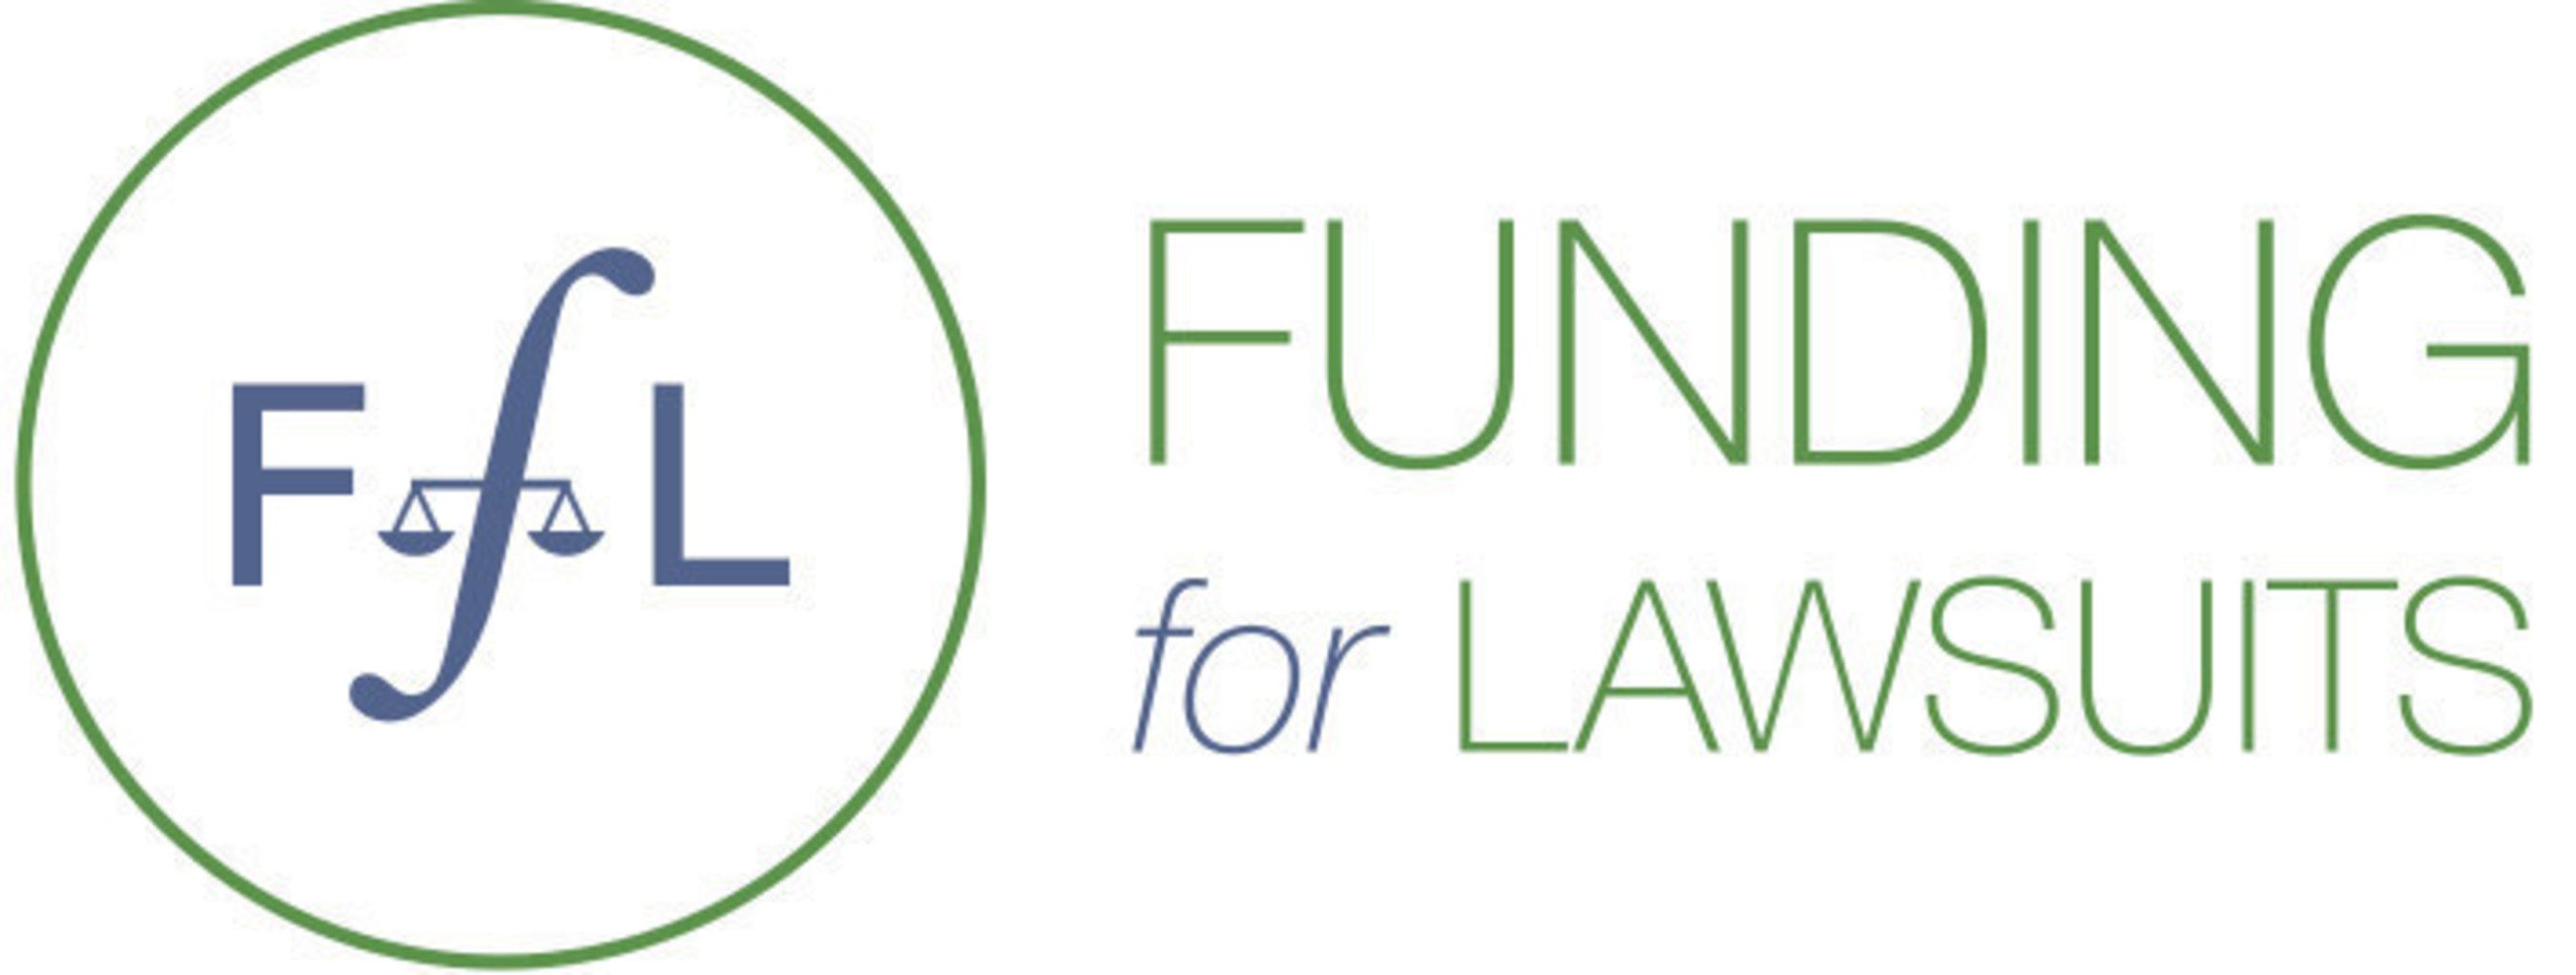 Funding for Lawsuits Logo